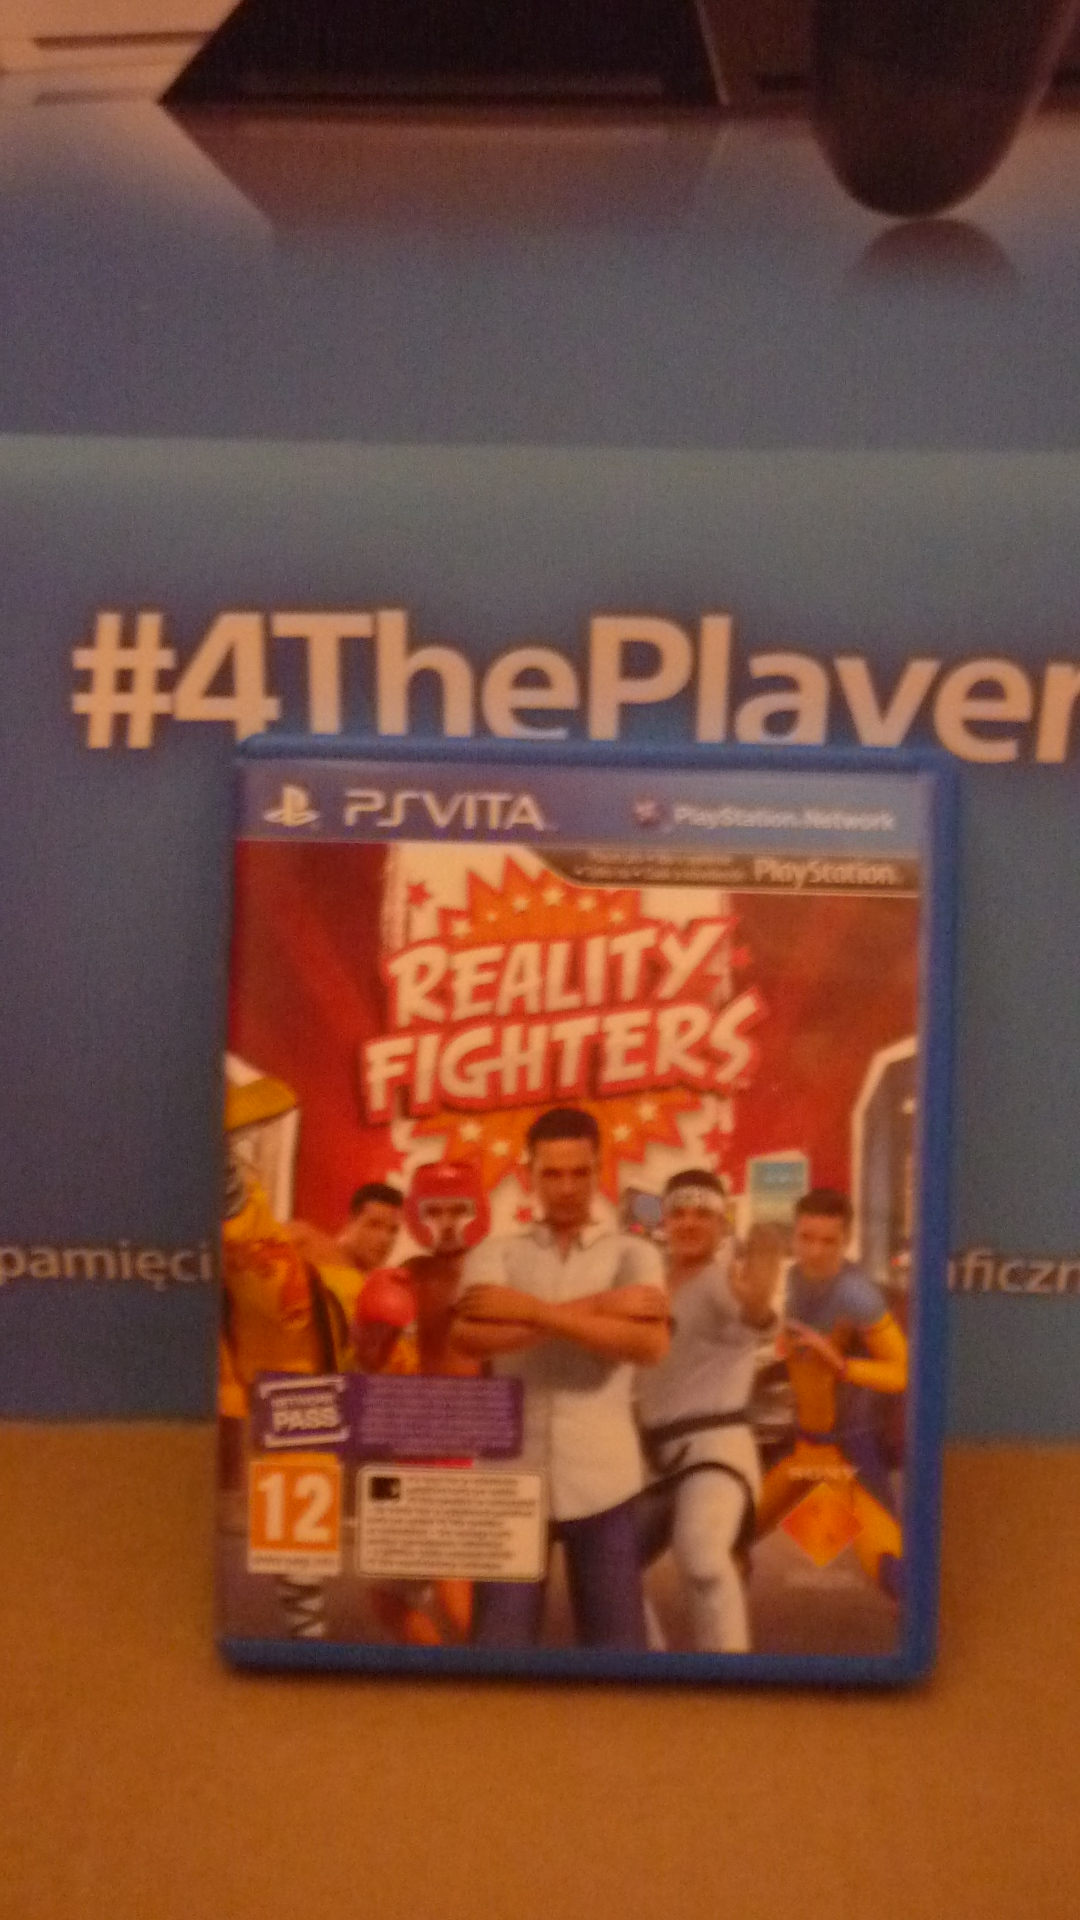 REALITY FIGHTERS PS VITA playstation